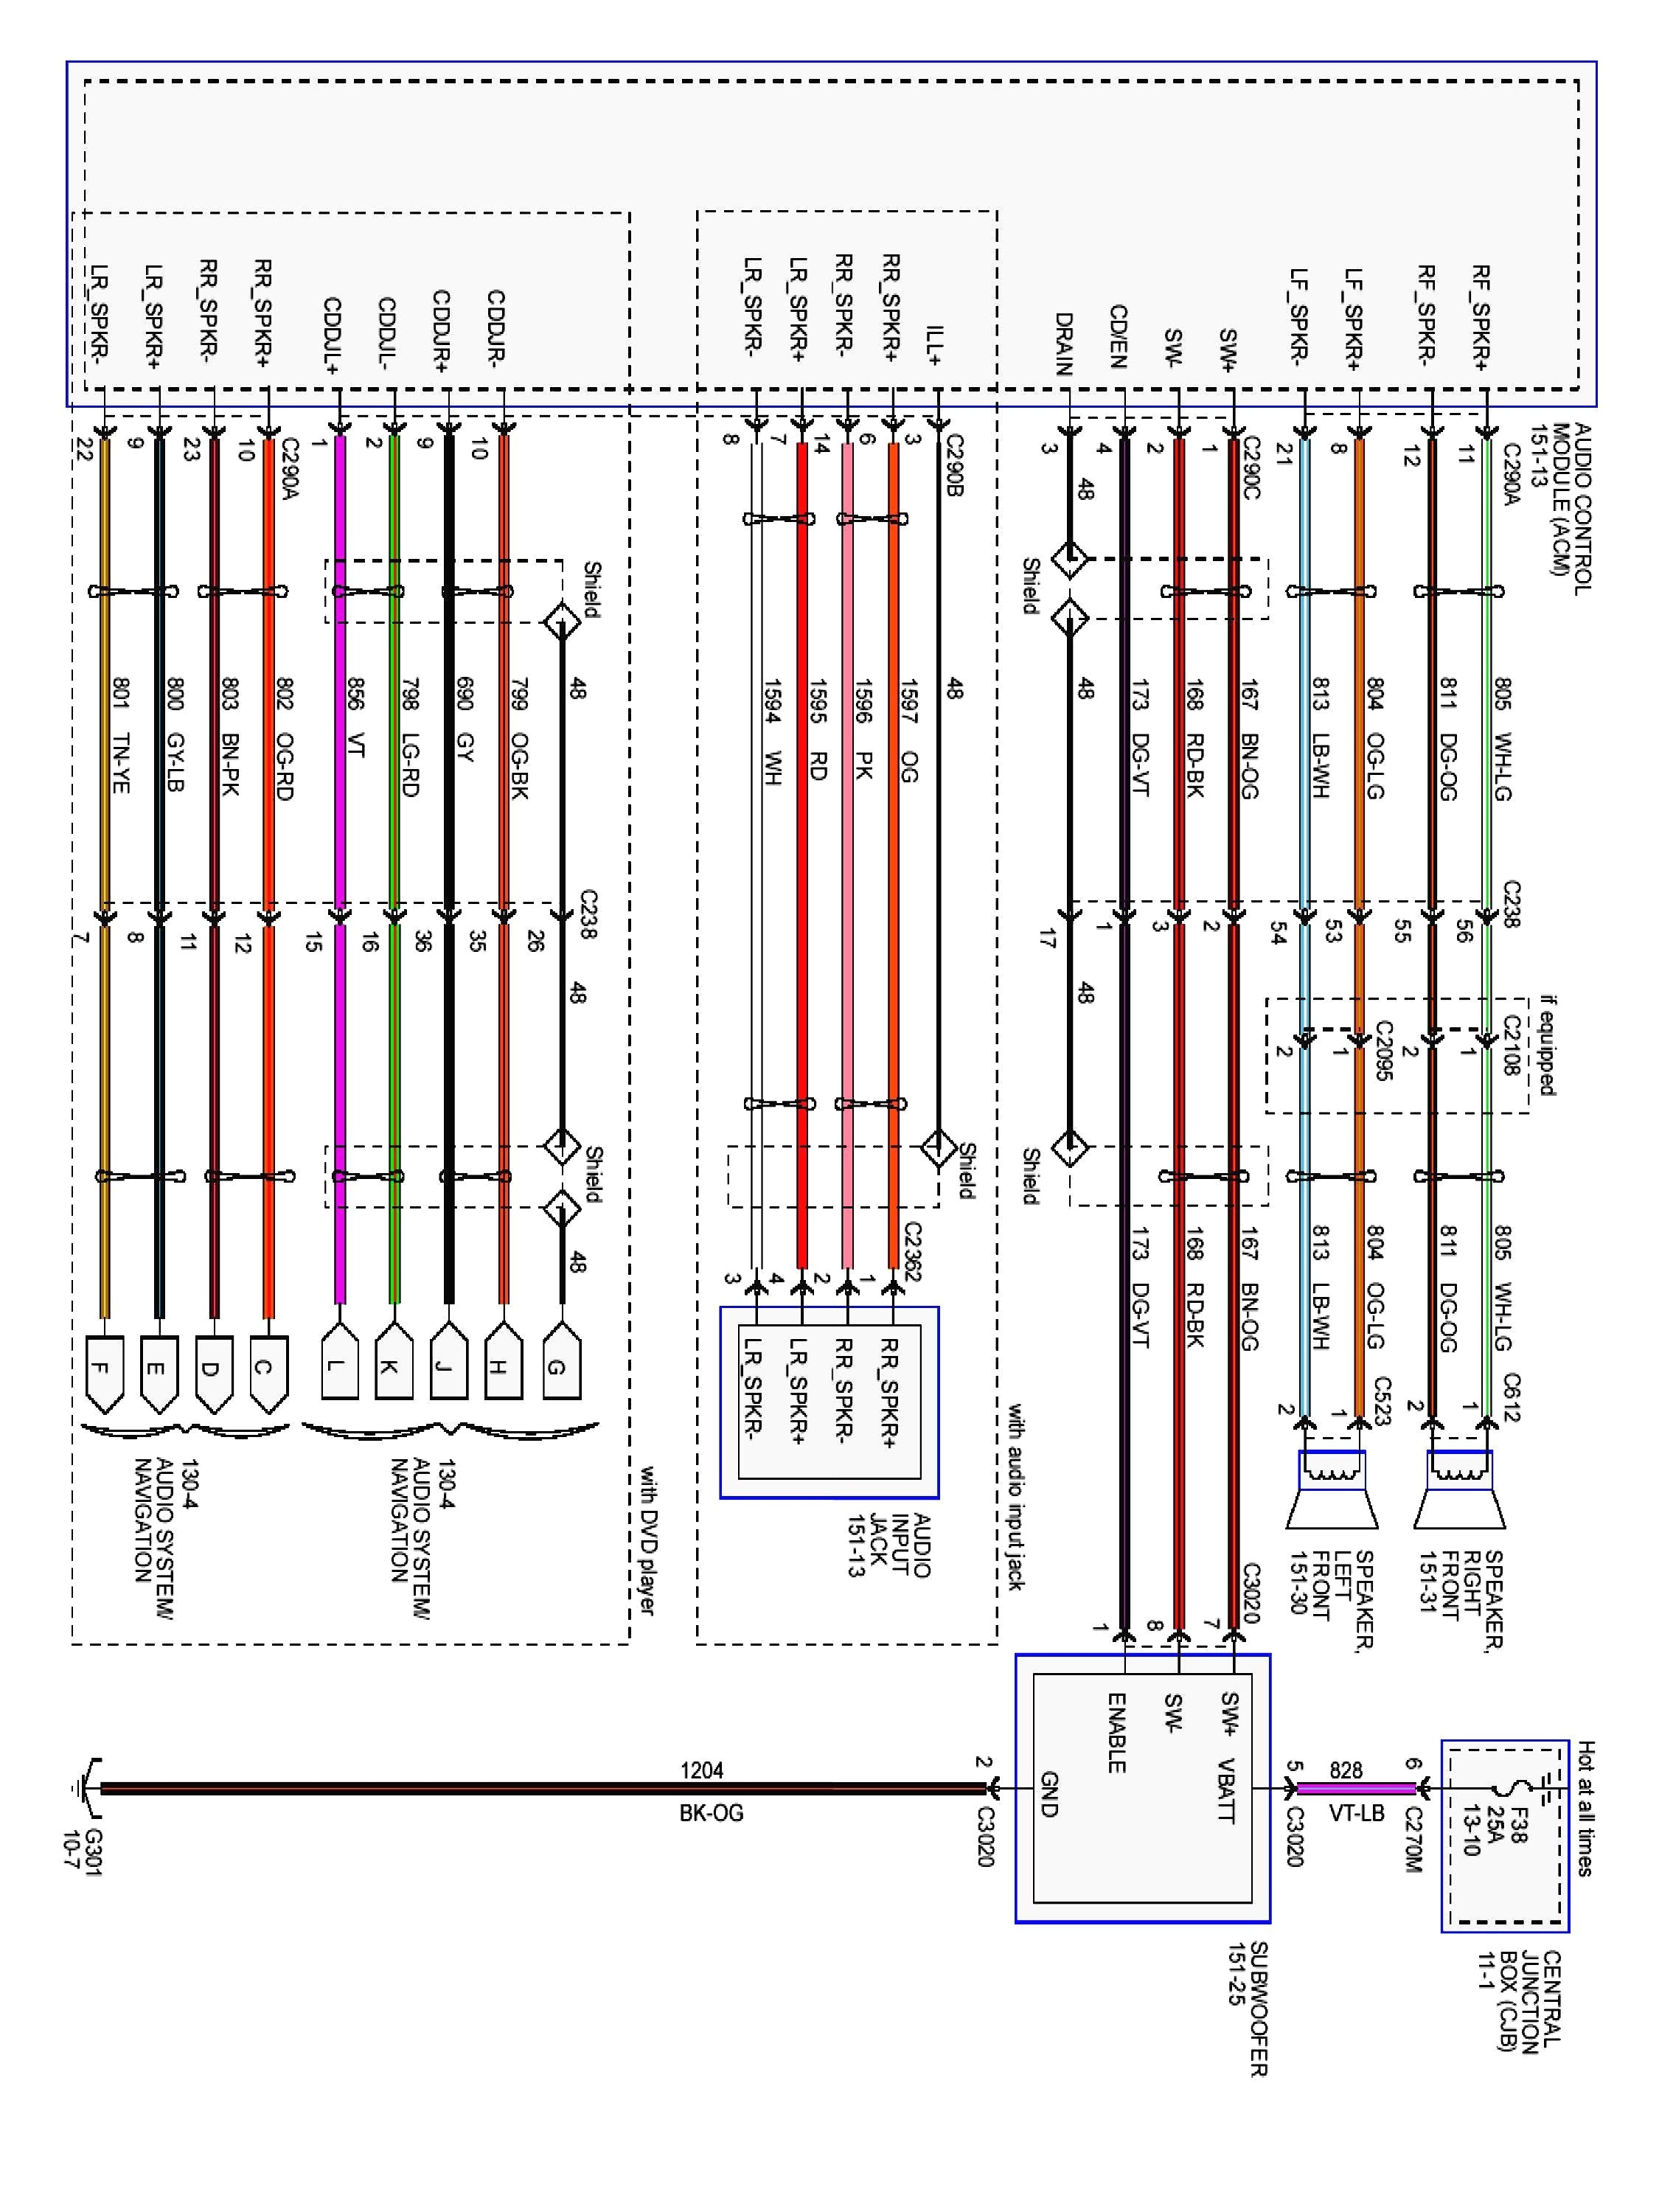 1998 ford expedition engine diagram 2004 ford ranger wiring diagram rh detoxicrecenze com 1998 ford expedition 5.4l engine diagram 1999 Expedition